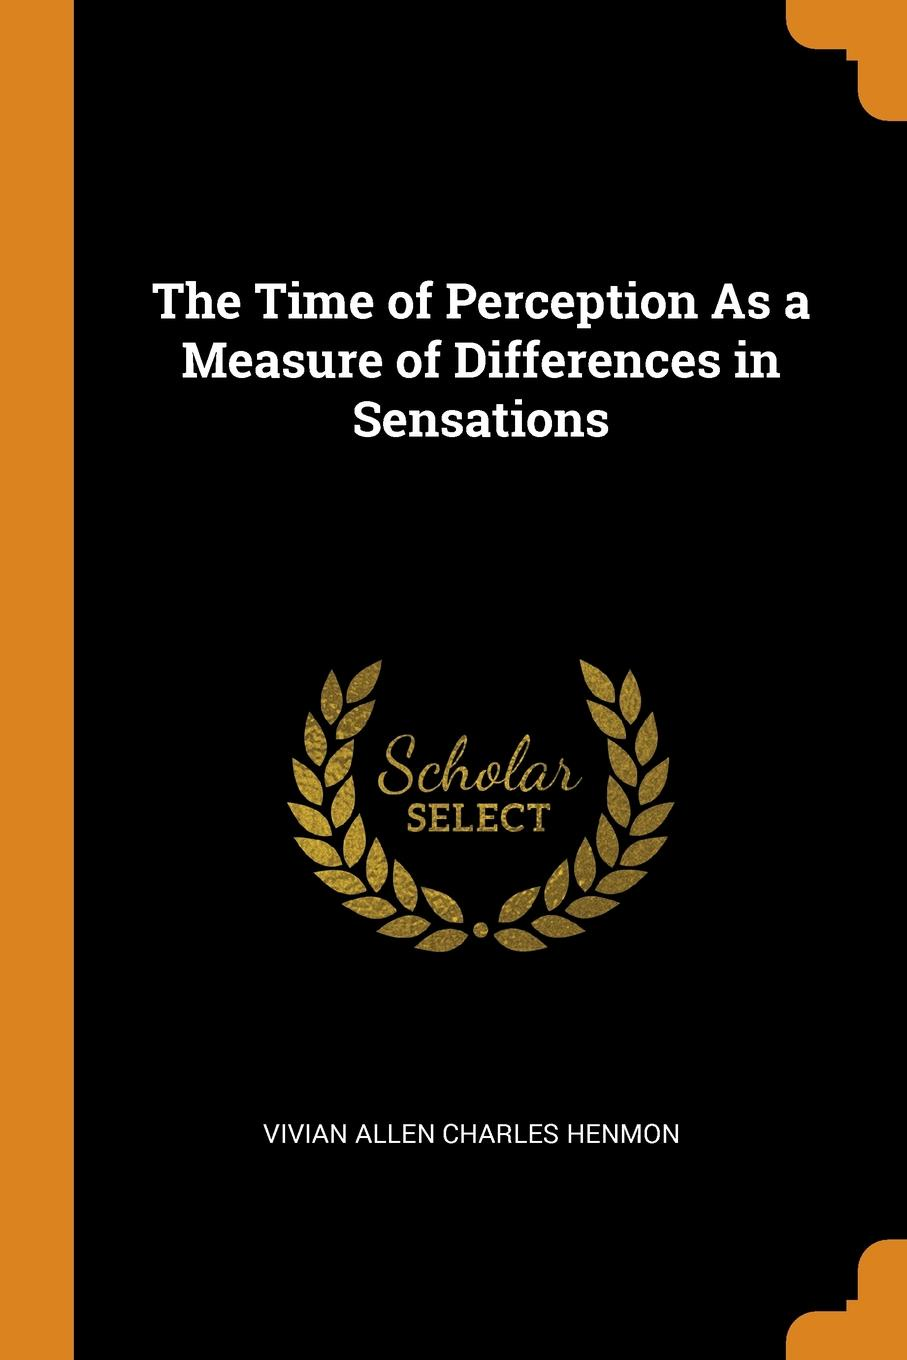 Vivian Allen Charles Henmon The Time of Perception As a Measure of Differences in Sensations